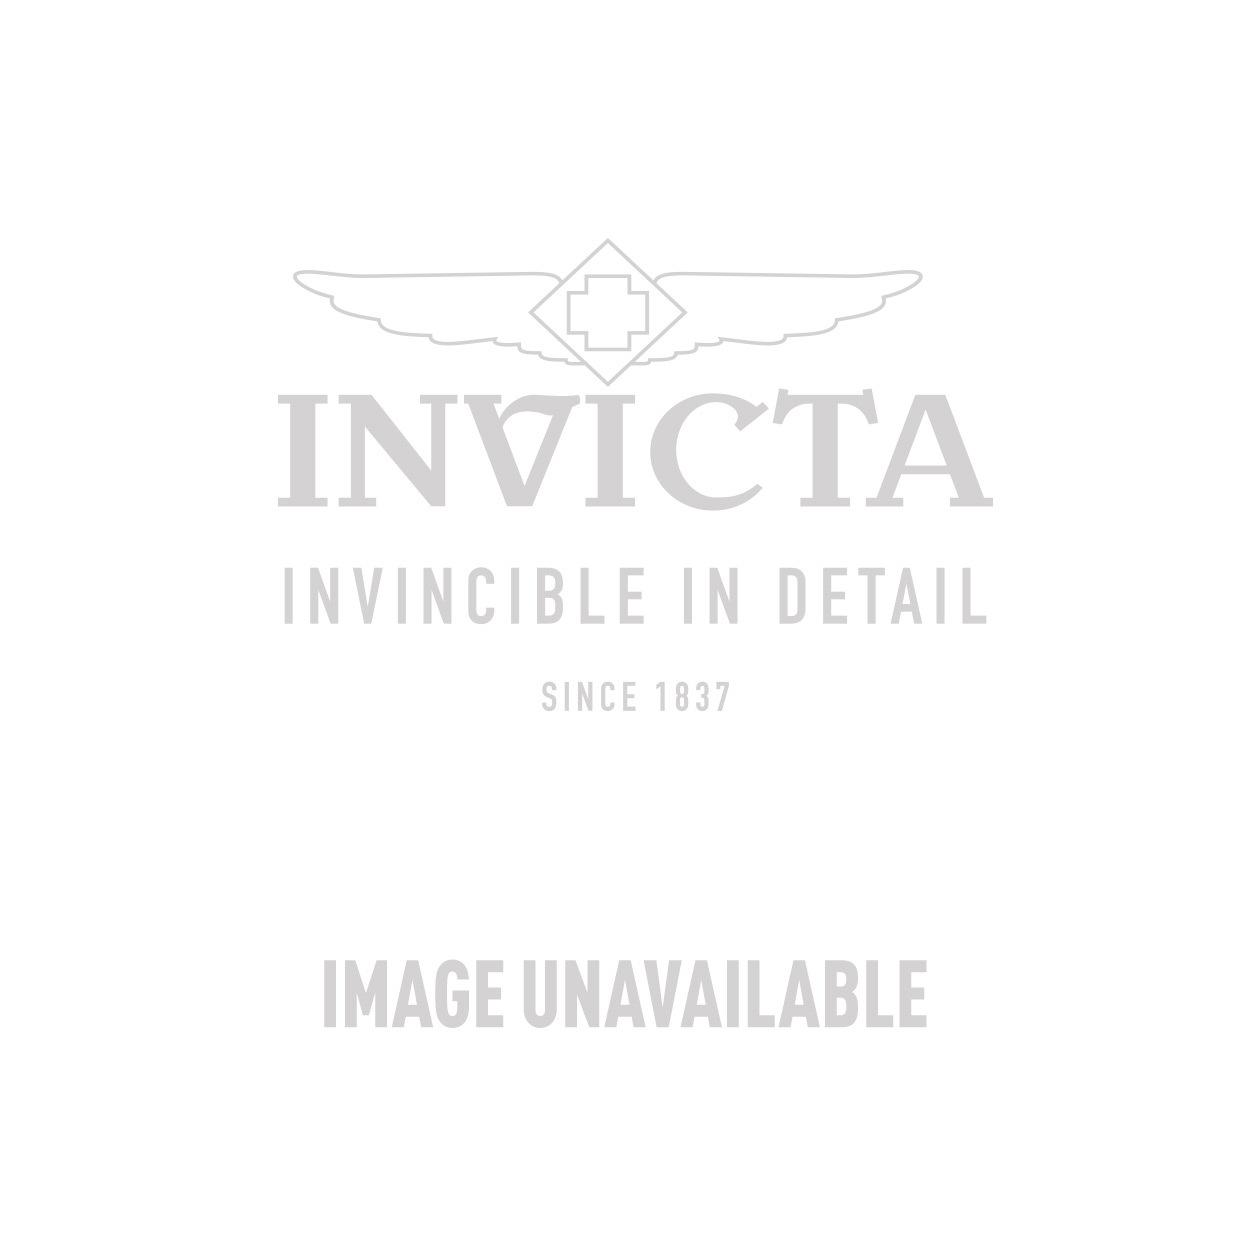 Invicta Sea Spider Mechanical Watch - Gunmetal case with Gunmetal, Grey tone Stainless Steel, Polyurethane band - Model 10355